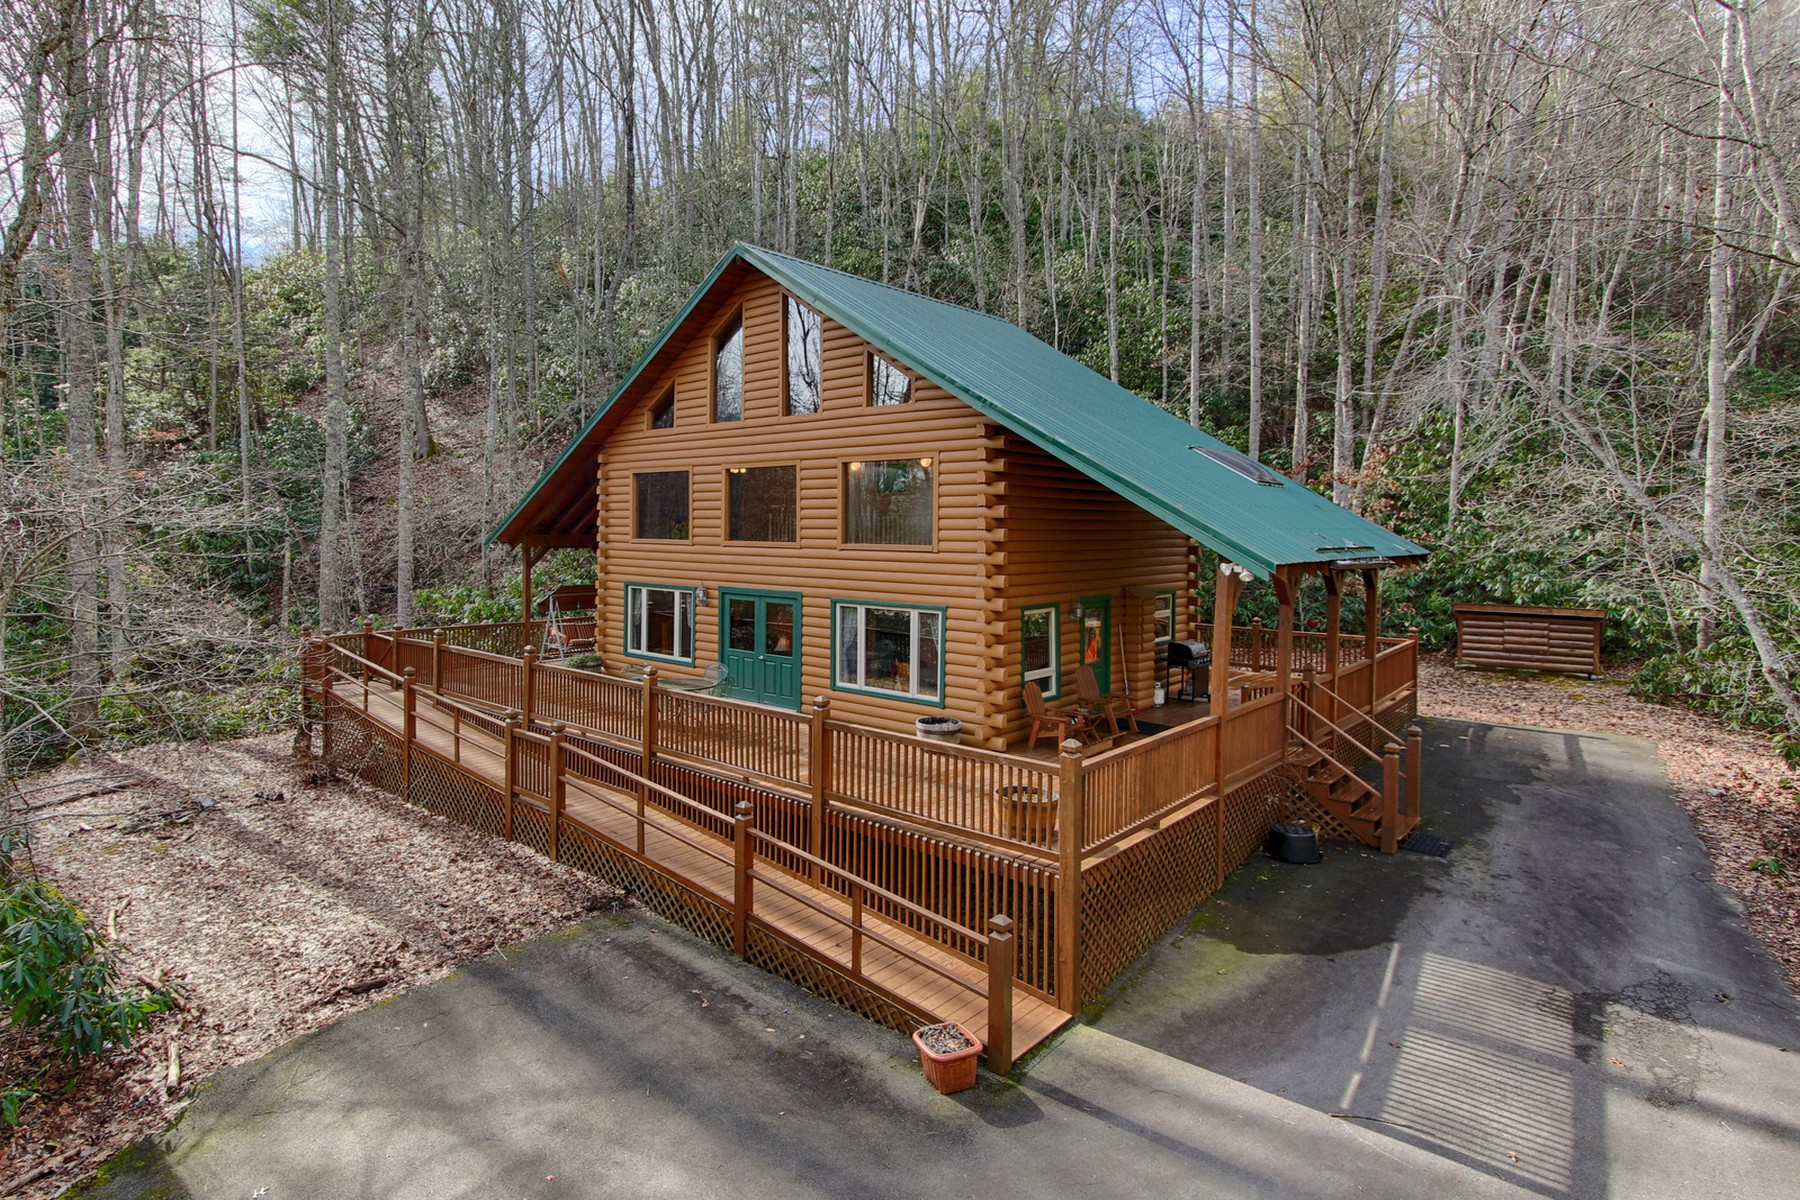 Single Family Home for Sale at Private Creekside Chalet 268A Moreland Drive Butler, Tennessee 37640 United States